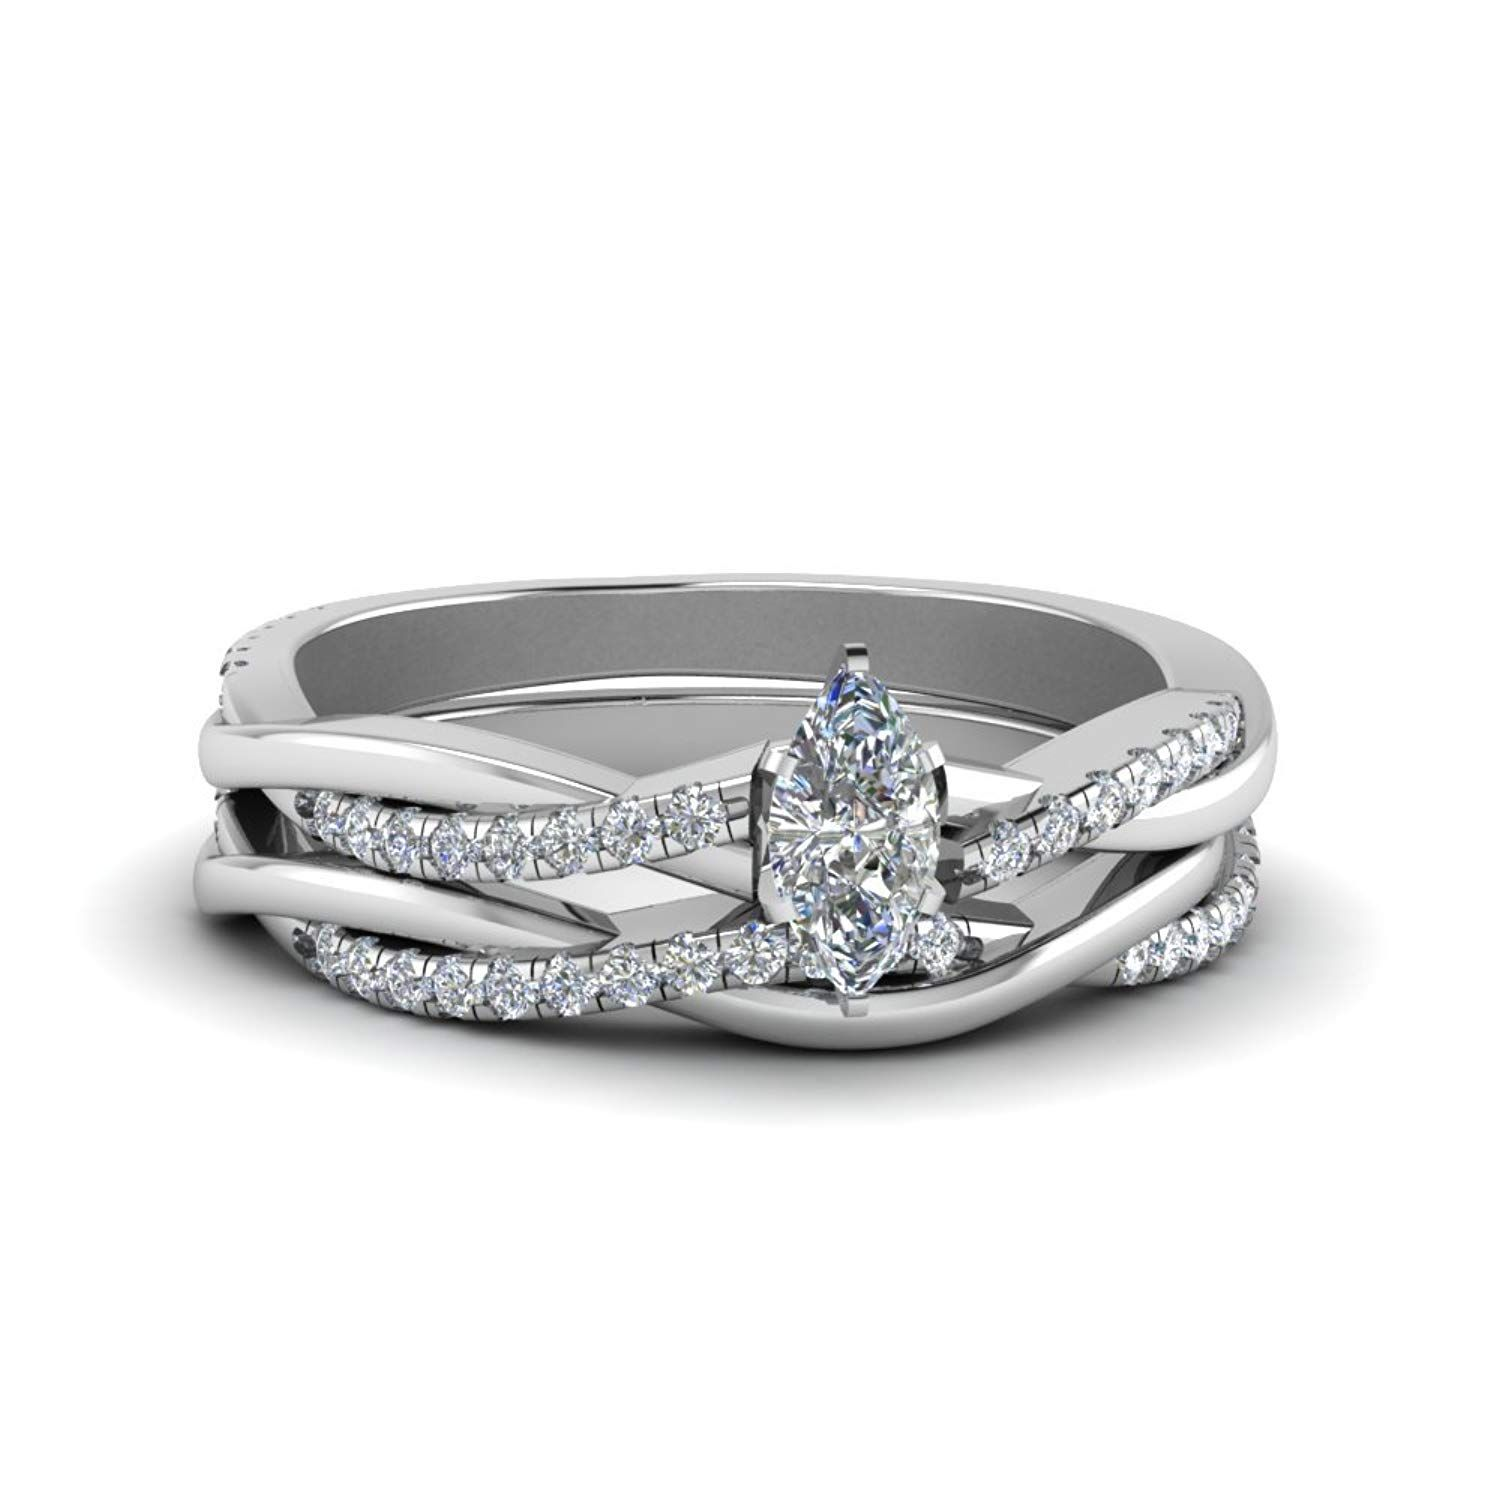 70f63411ef luxrygold 14K White Gold Pl 1 CTW Marquise White CZ Diamond Infinity Twist  Matching Wedding Ring Set -- We appreciate you for seeing our picture.